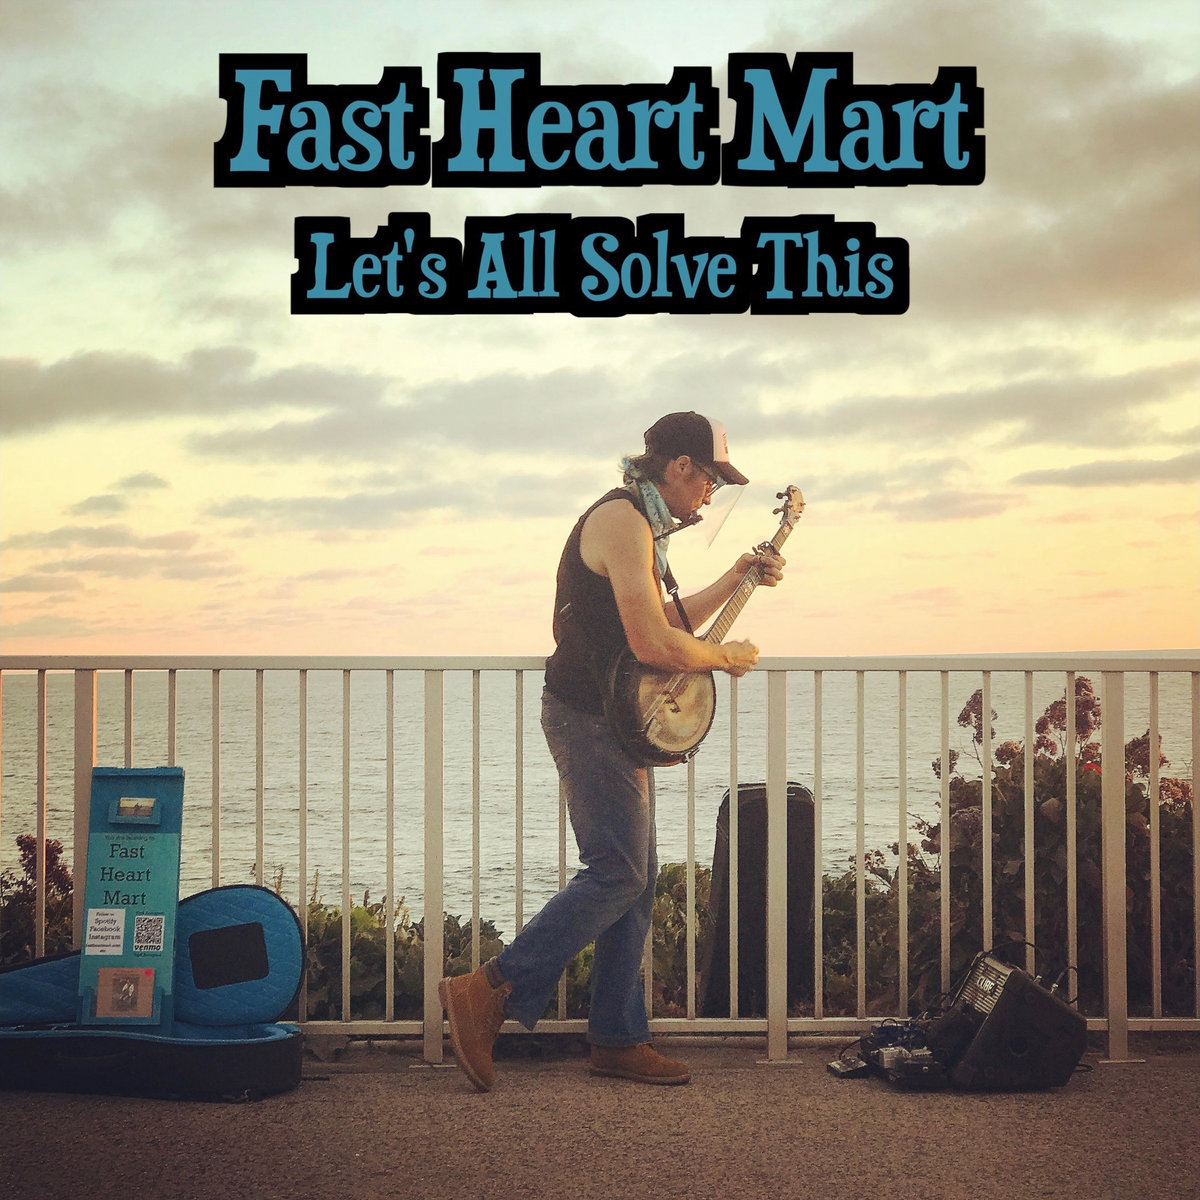 Let's All Solve This by Fast Heart Mart